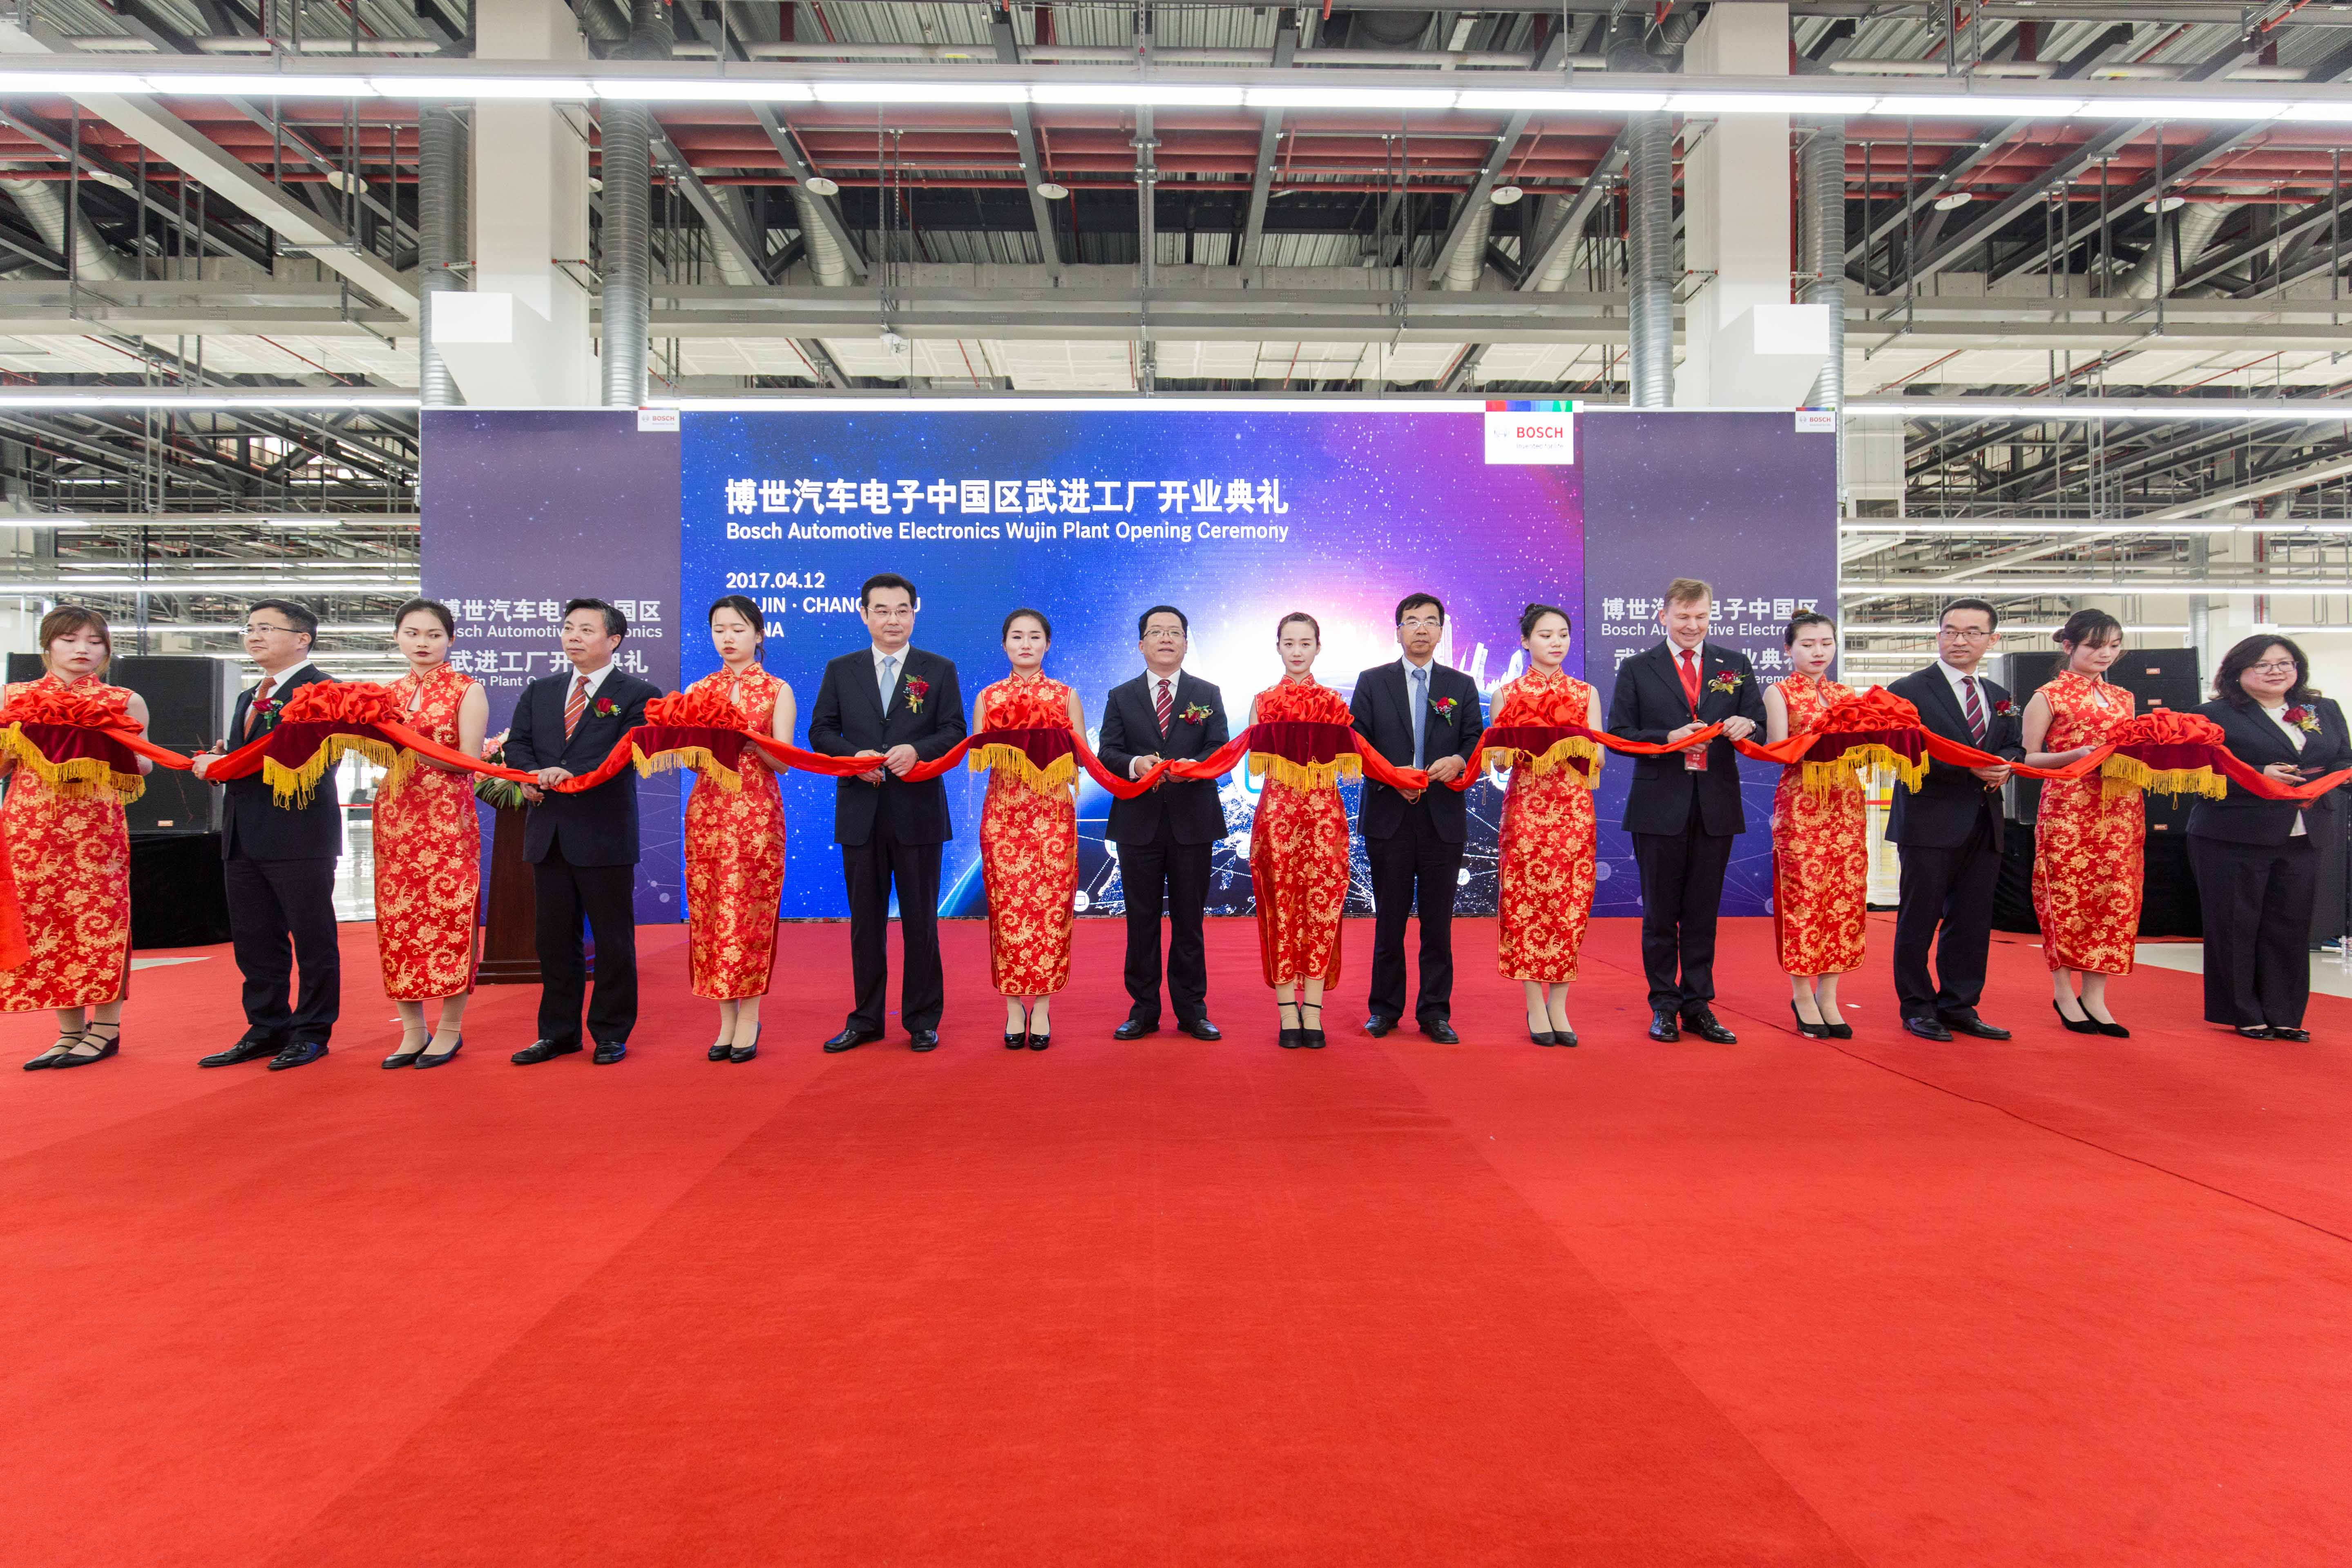 Opening of the new Bosch plant in Wujin, China